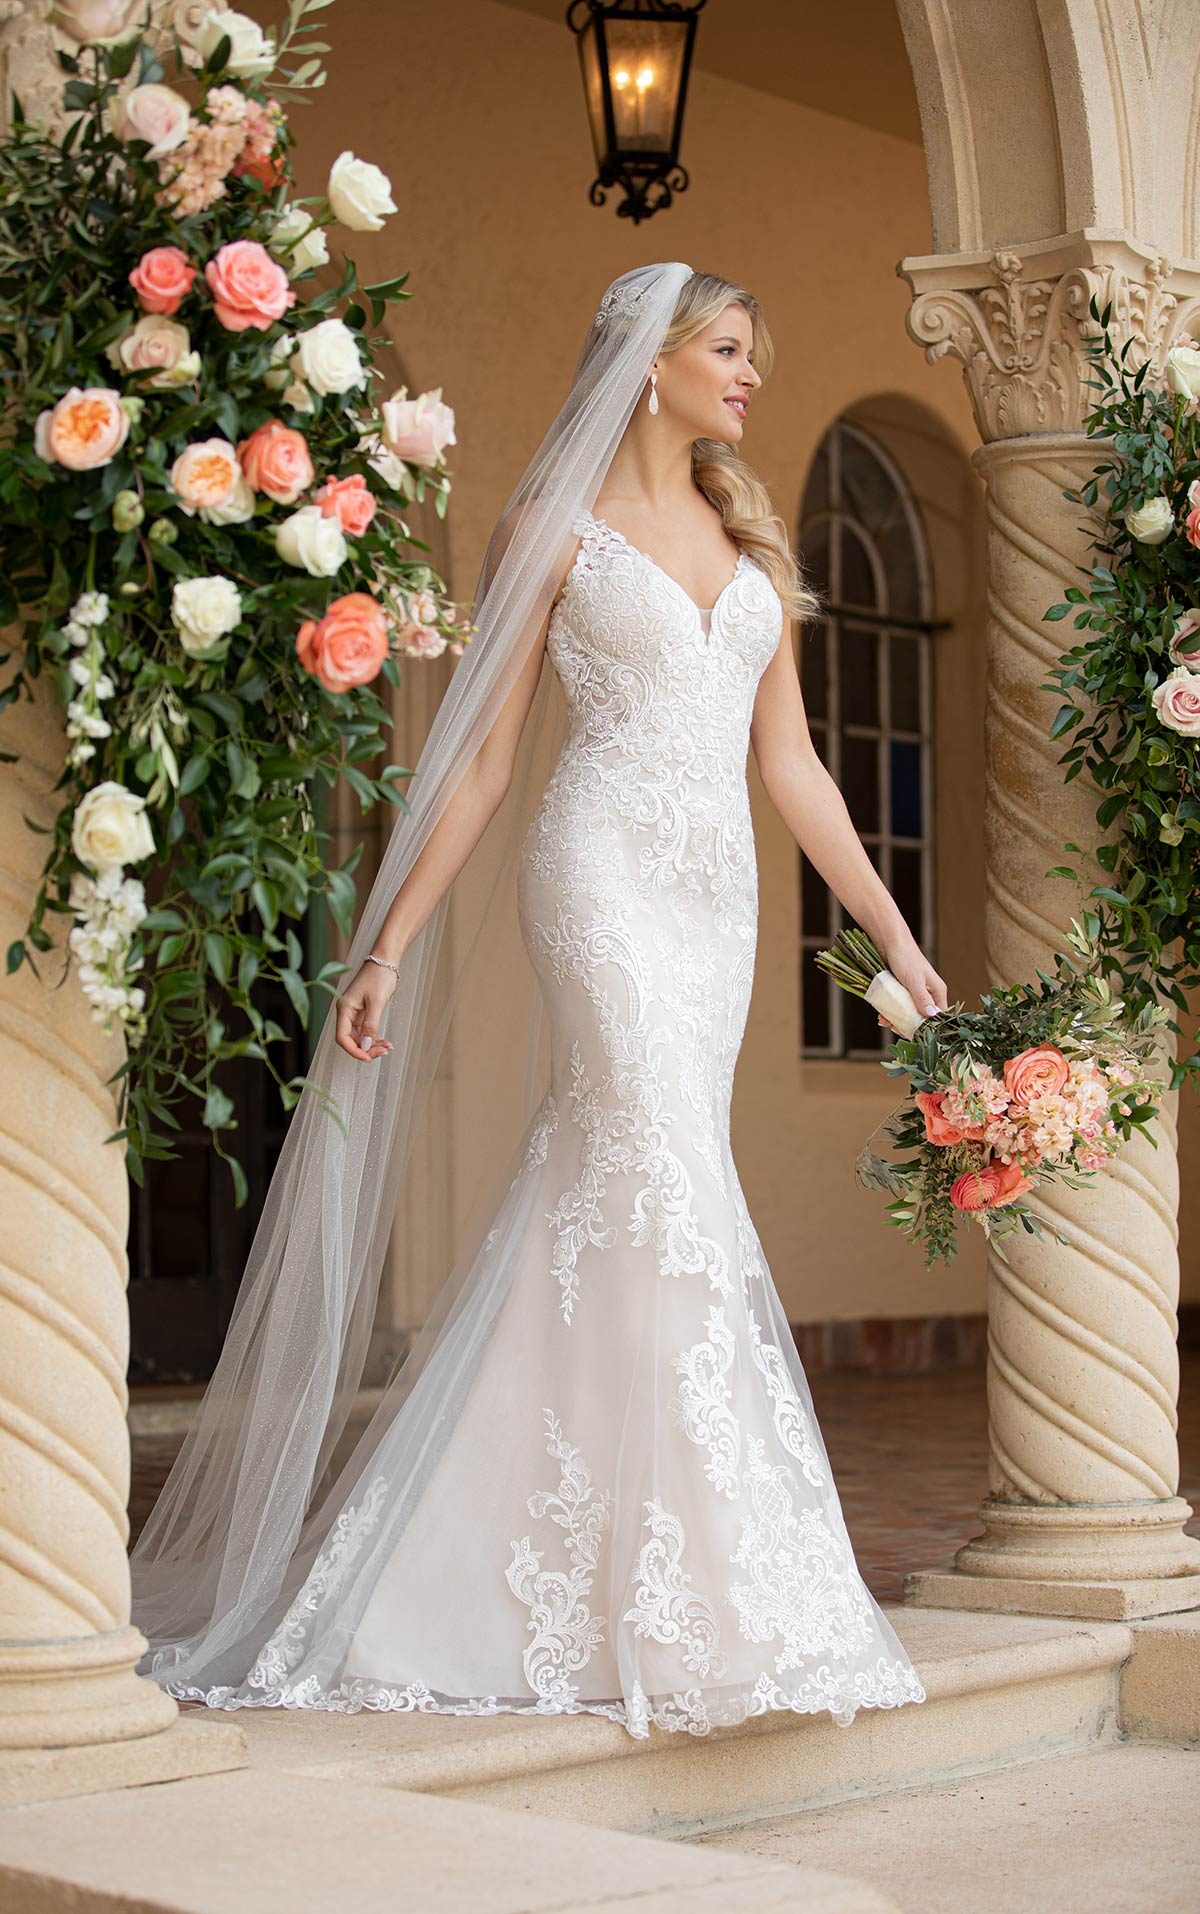 Celebrate True Love with the New Stella York Wedding Dress Collection